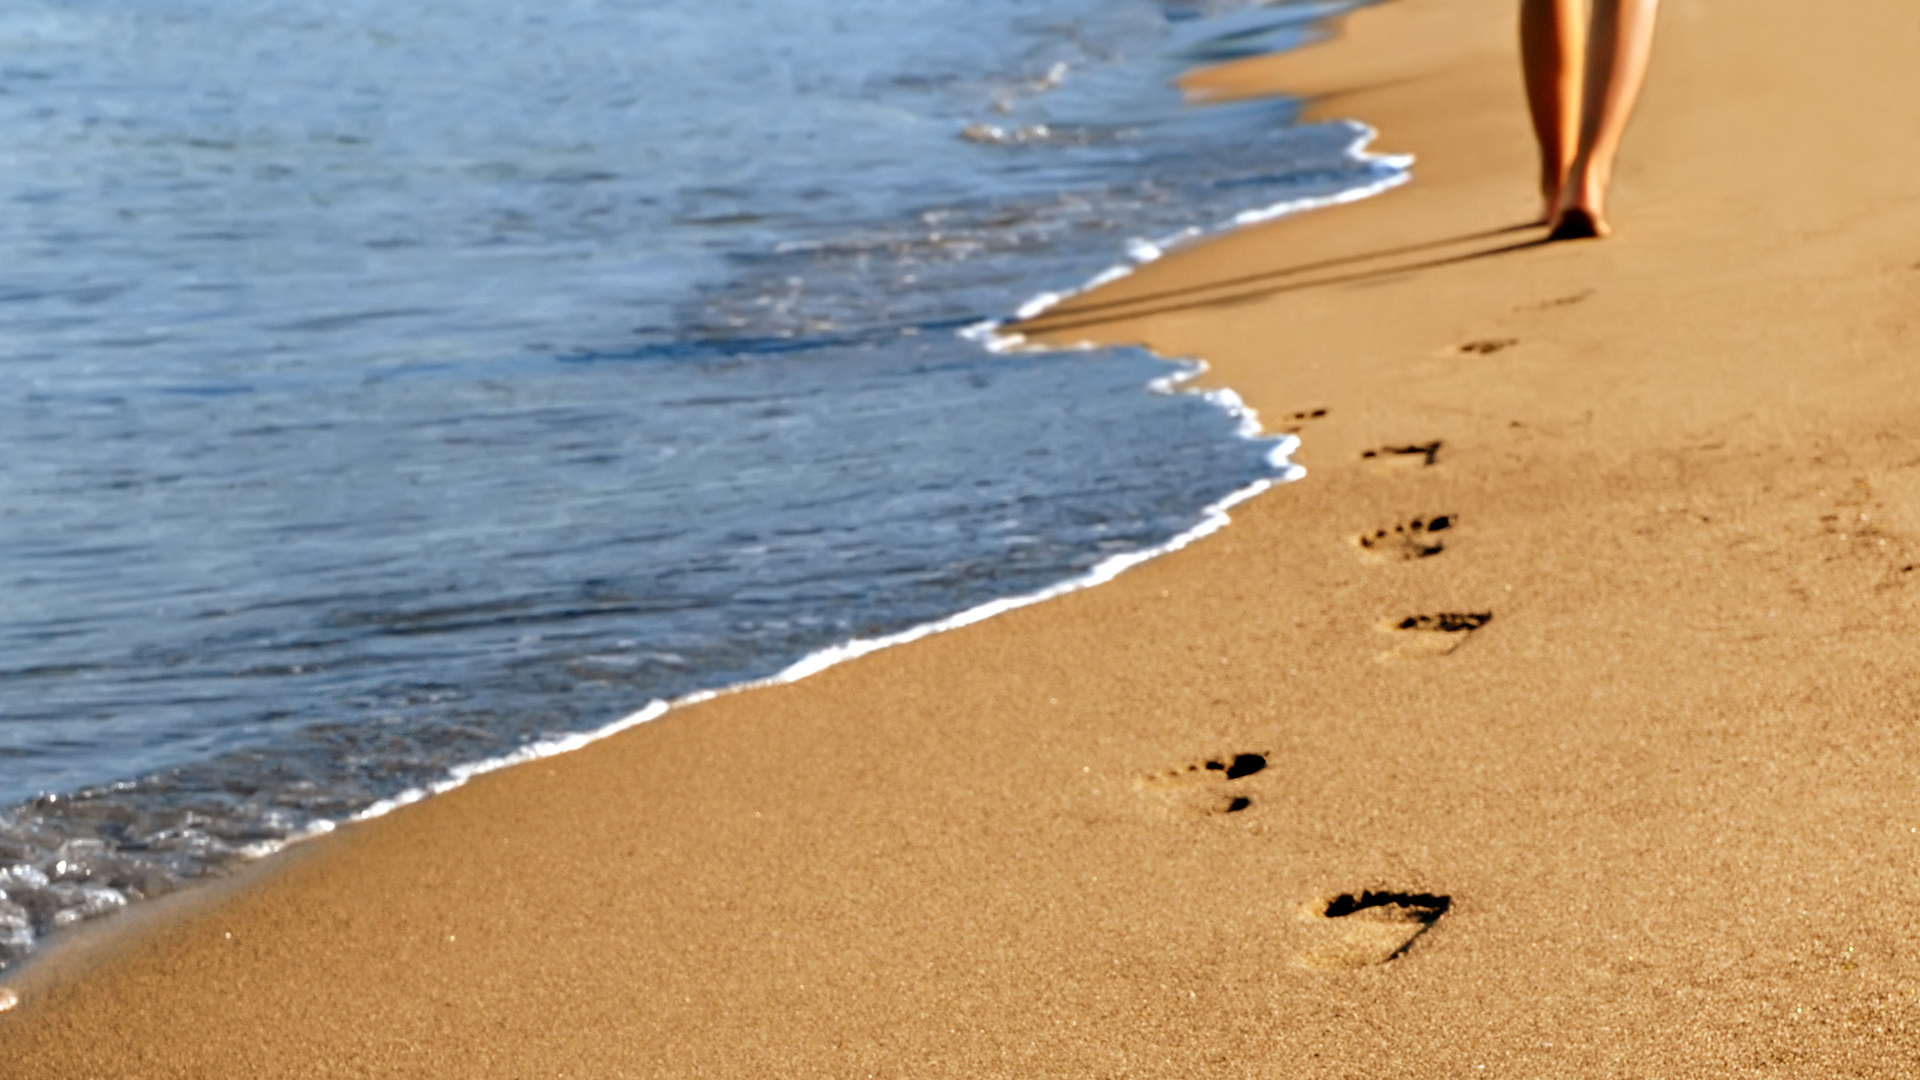 Footprints Wallpaper